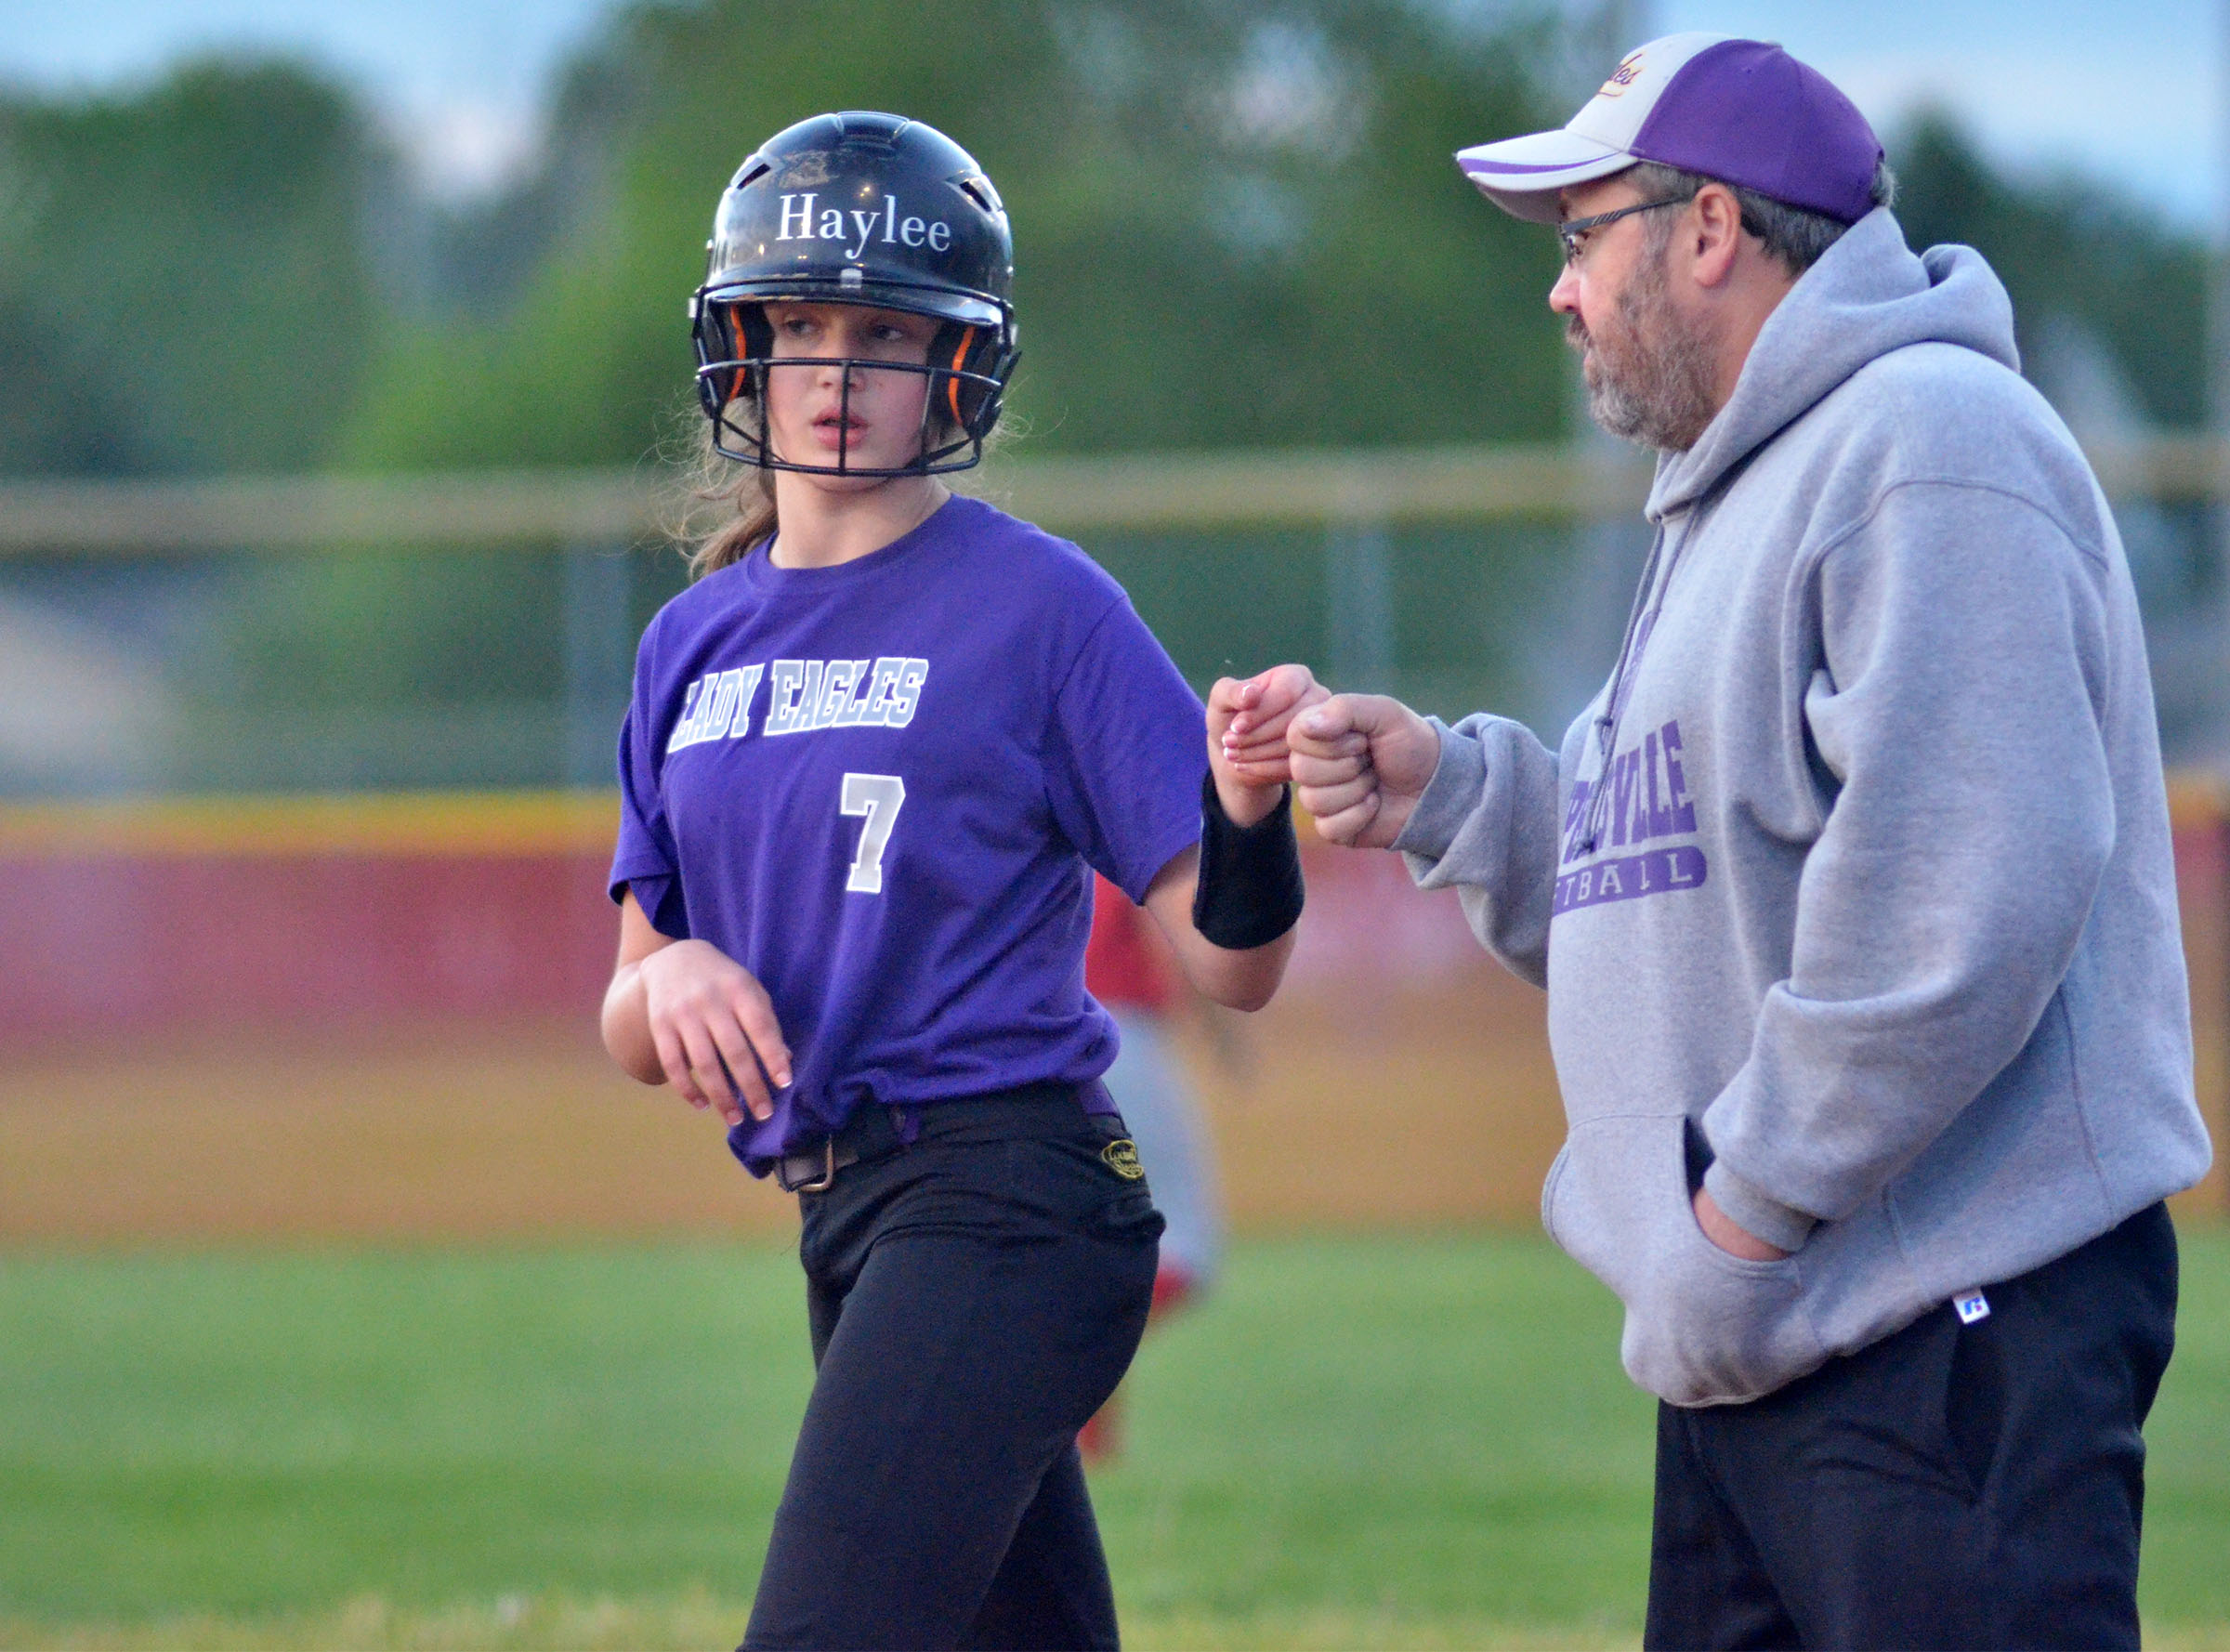 CMS sixth-grader Haylee Allen bumps fists with assistant coach Joey Fields after a hit.